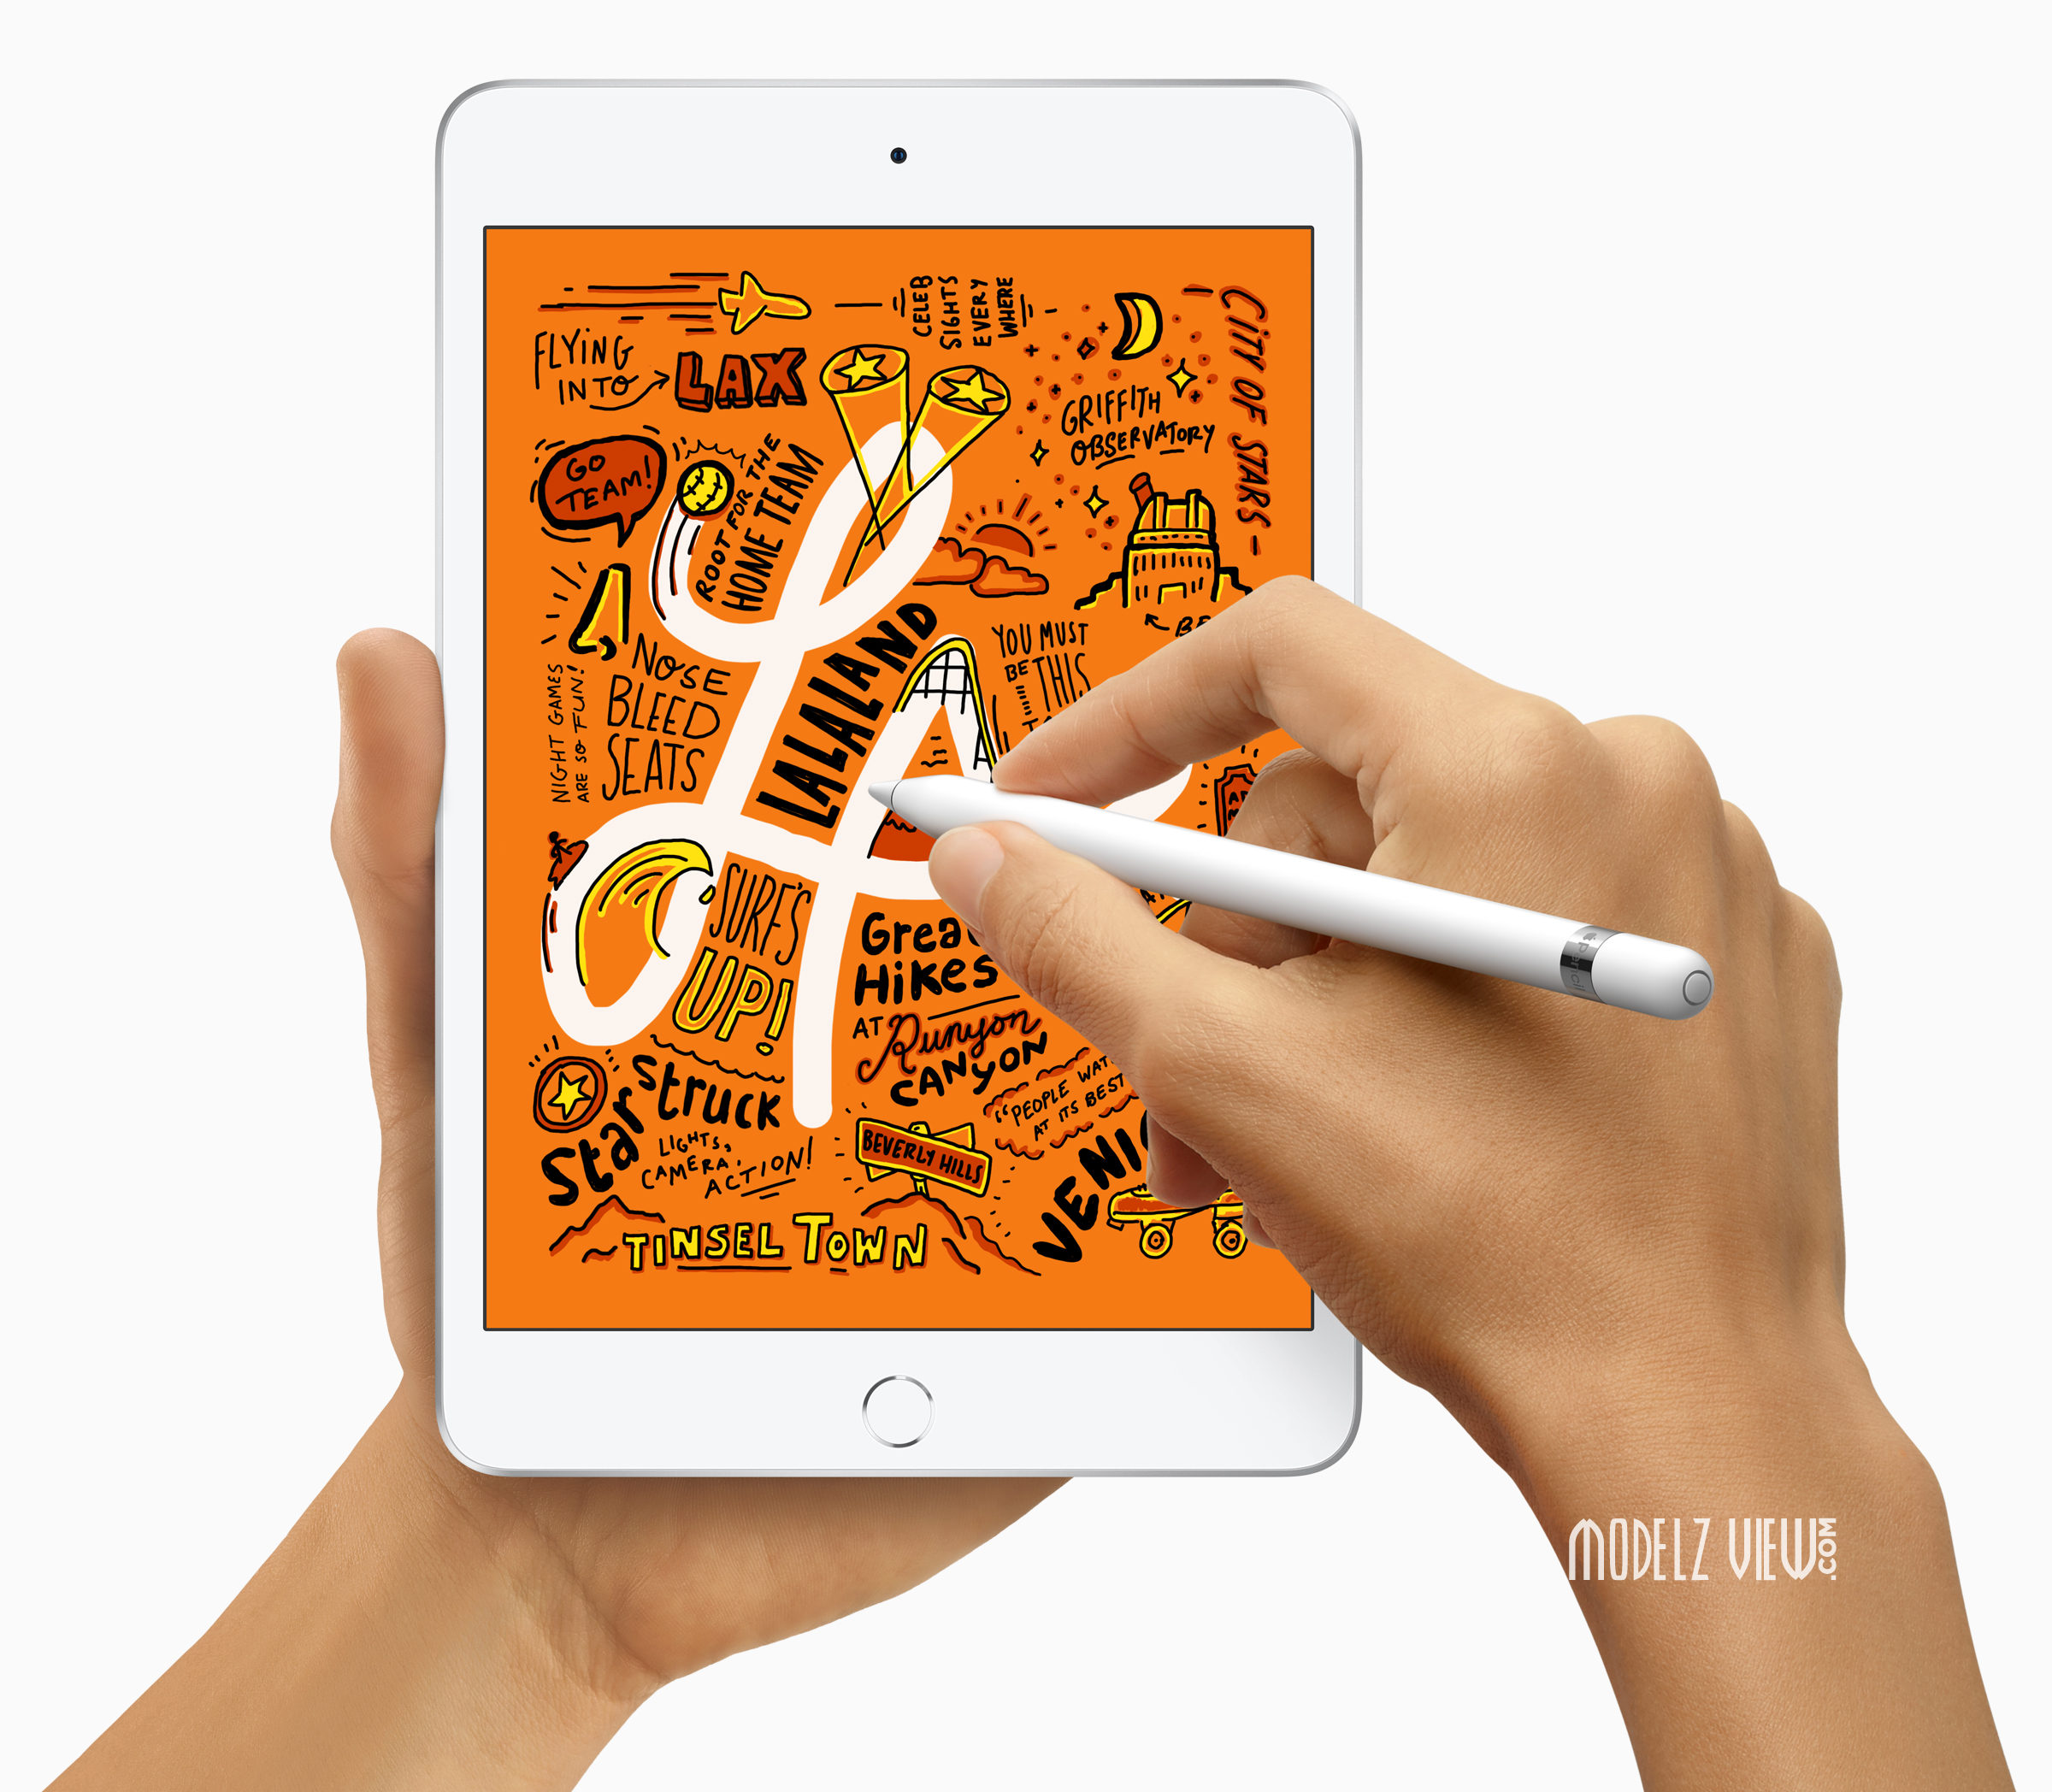 All-new iPad Air and iPad mini deliver dramatic power and capability